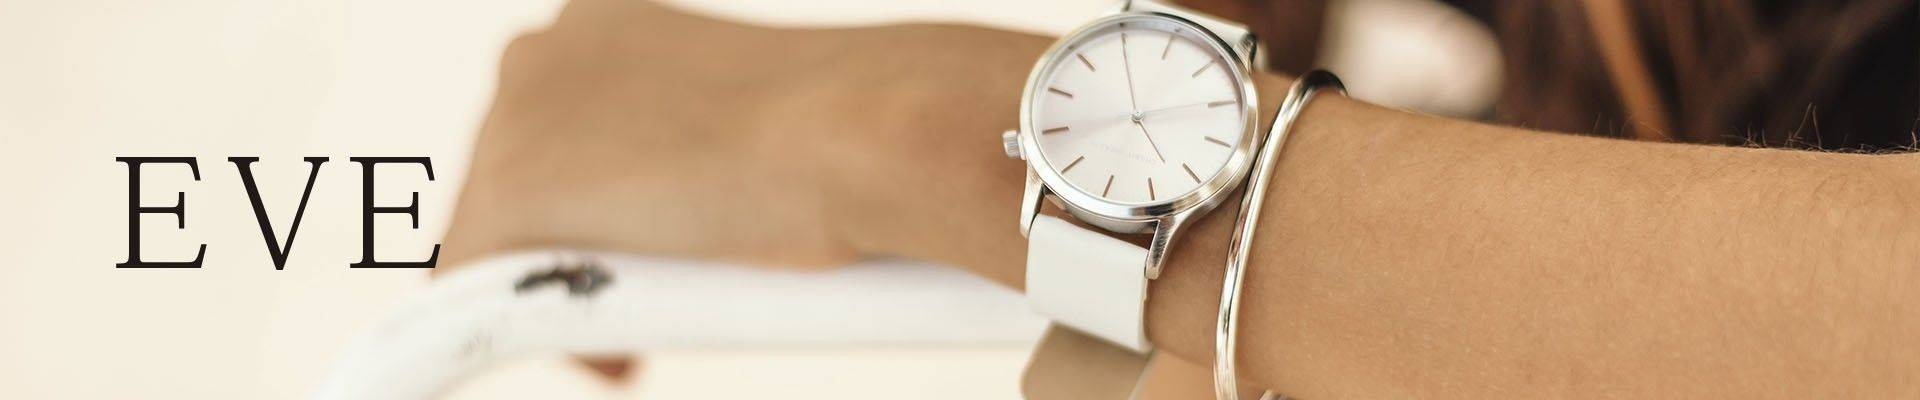 Relojes de tendencia - Charly Therapy